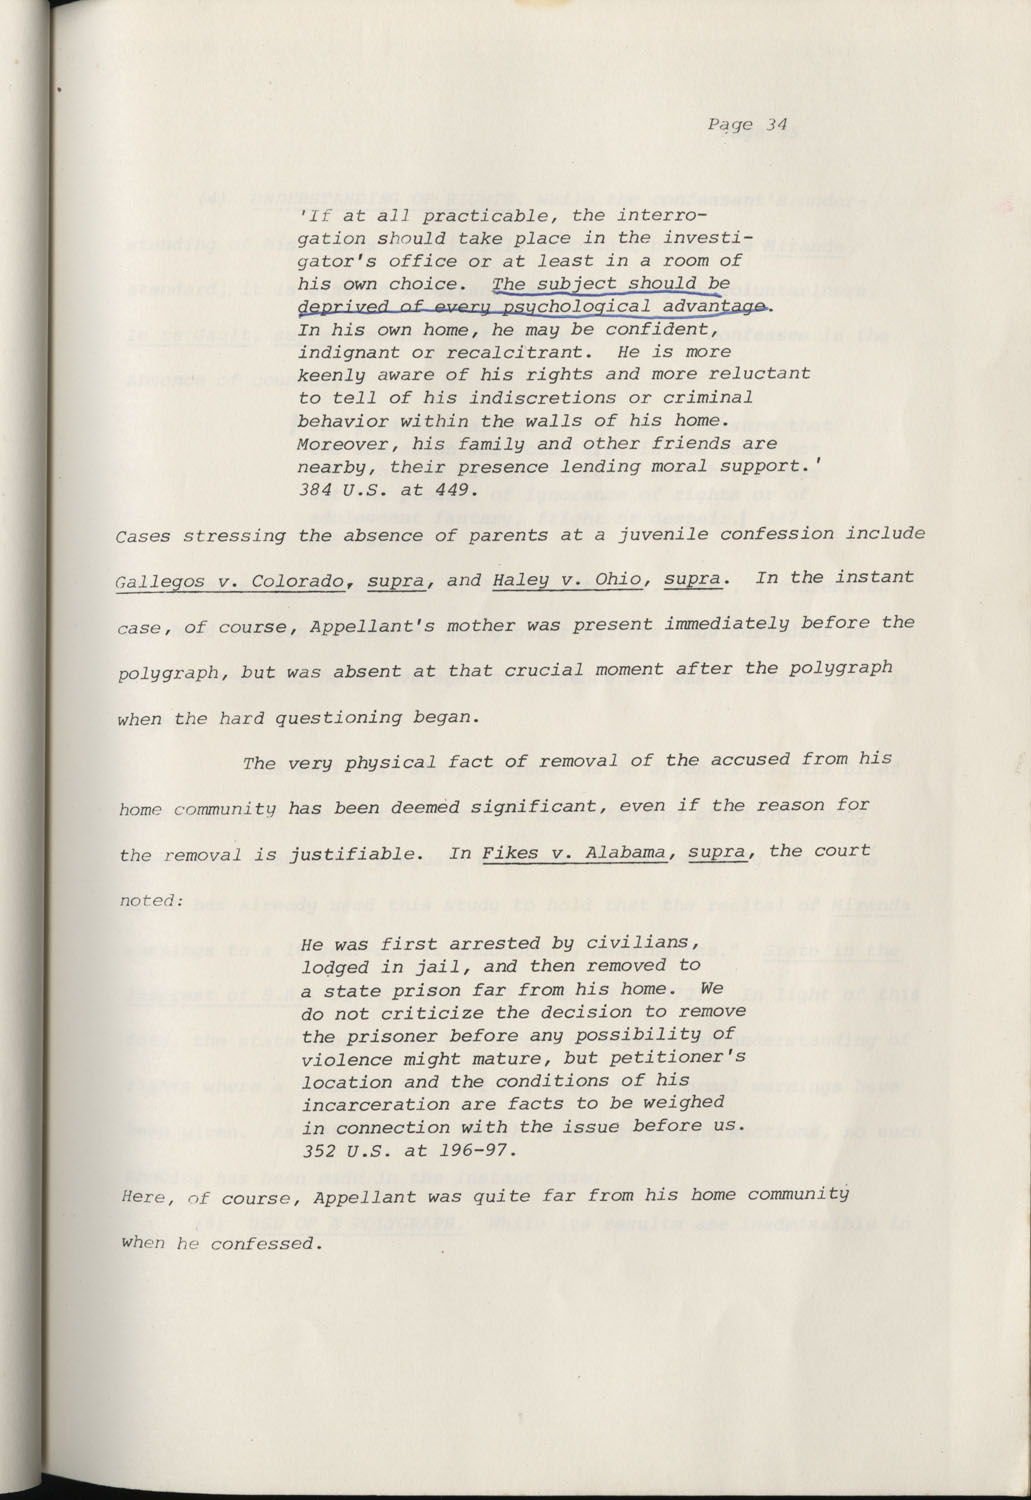 State of South Carolina vs. Robert Lee Smith, Brief of Appellant, Page 34